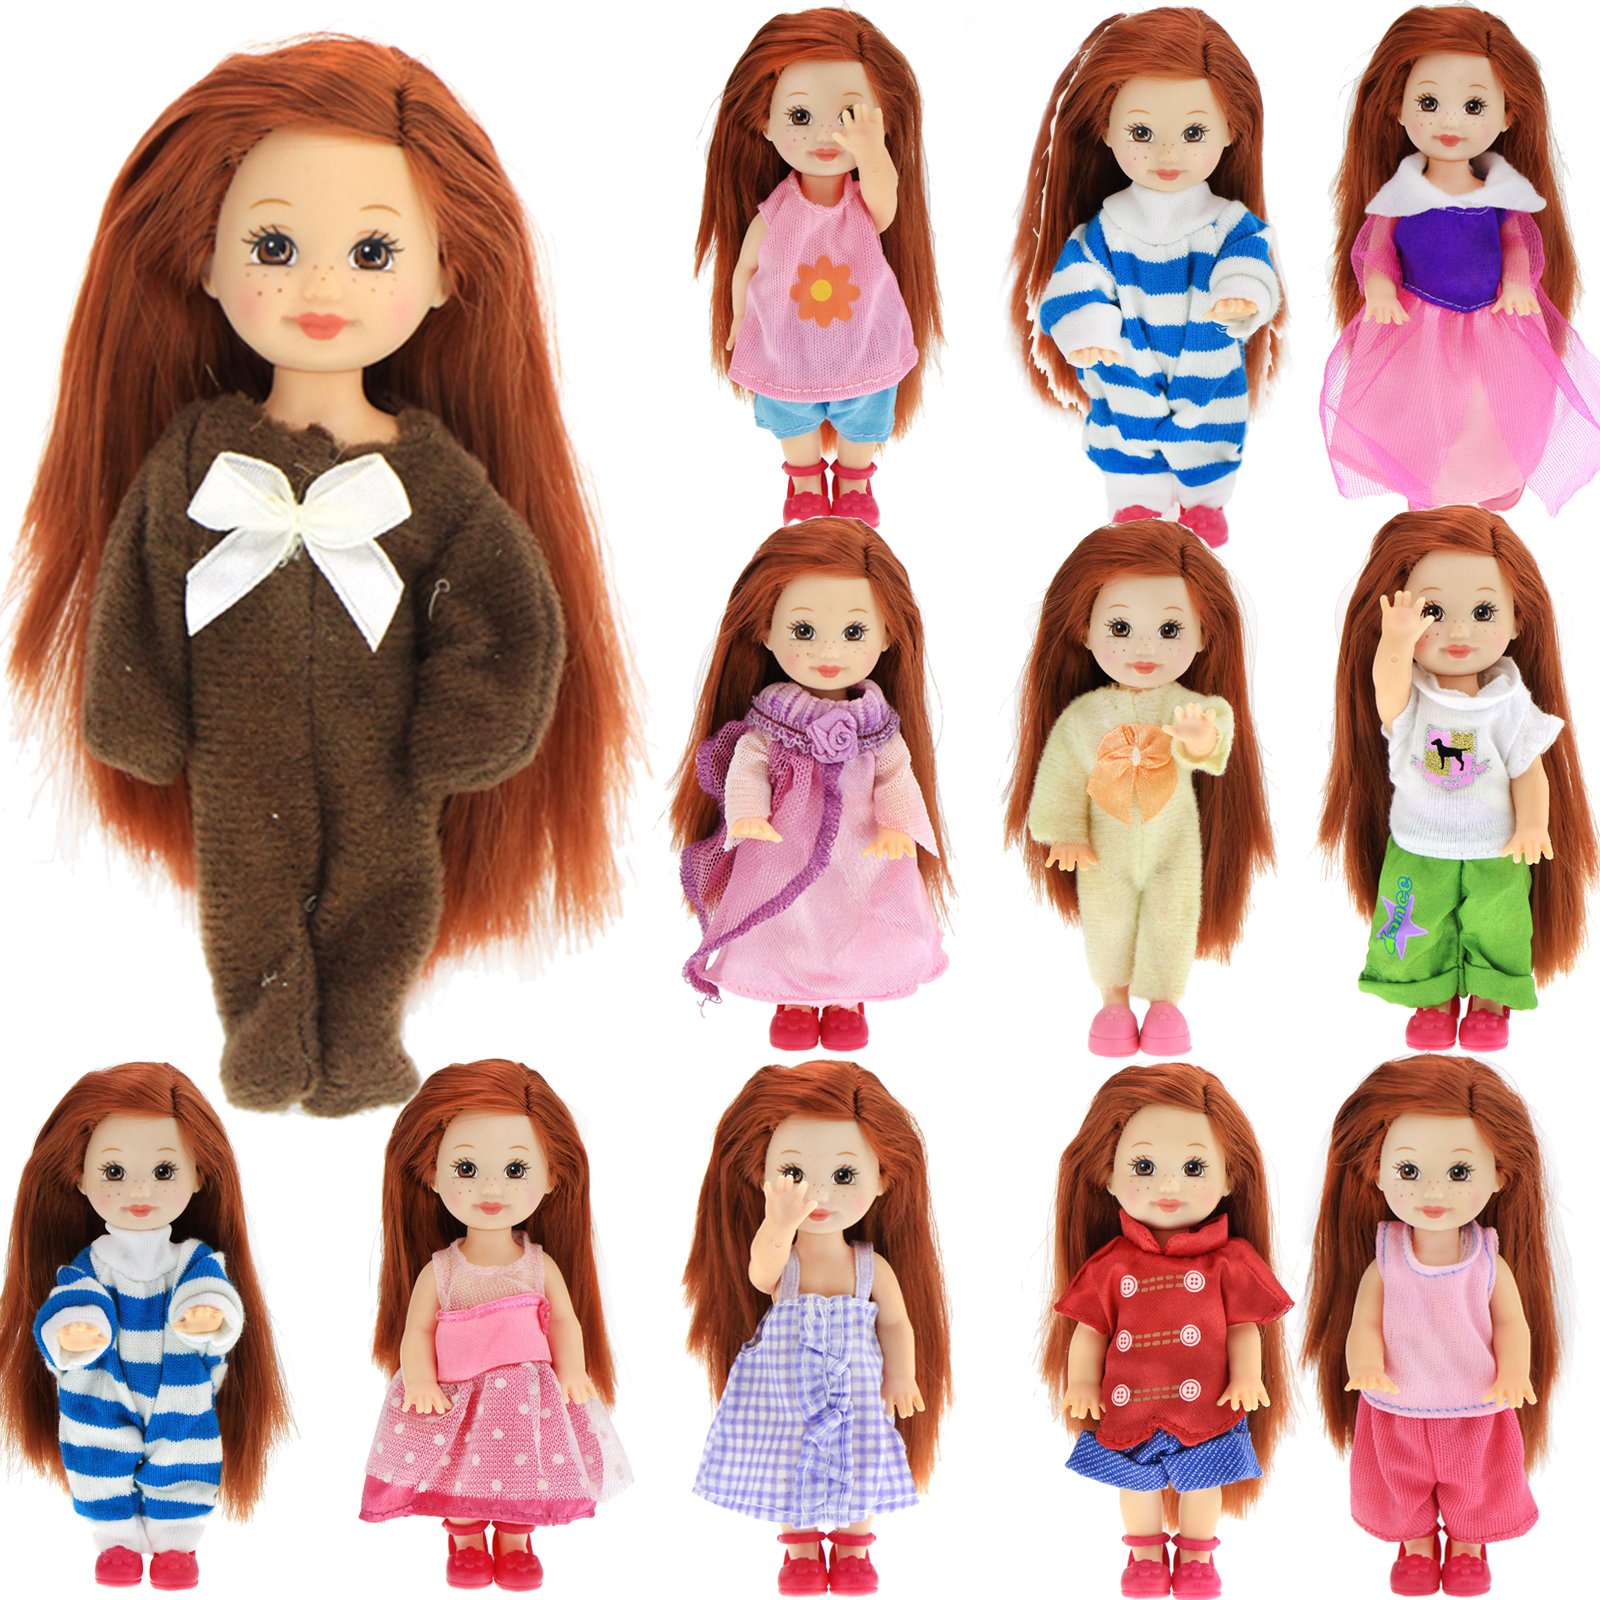 Random 10x Mini Outfit Mixed Style Fashion Casual Wear Little Dress Clothes For Kelly Doll Dollhouse Accessories Kids DIY Toy